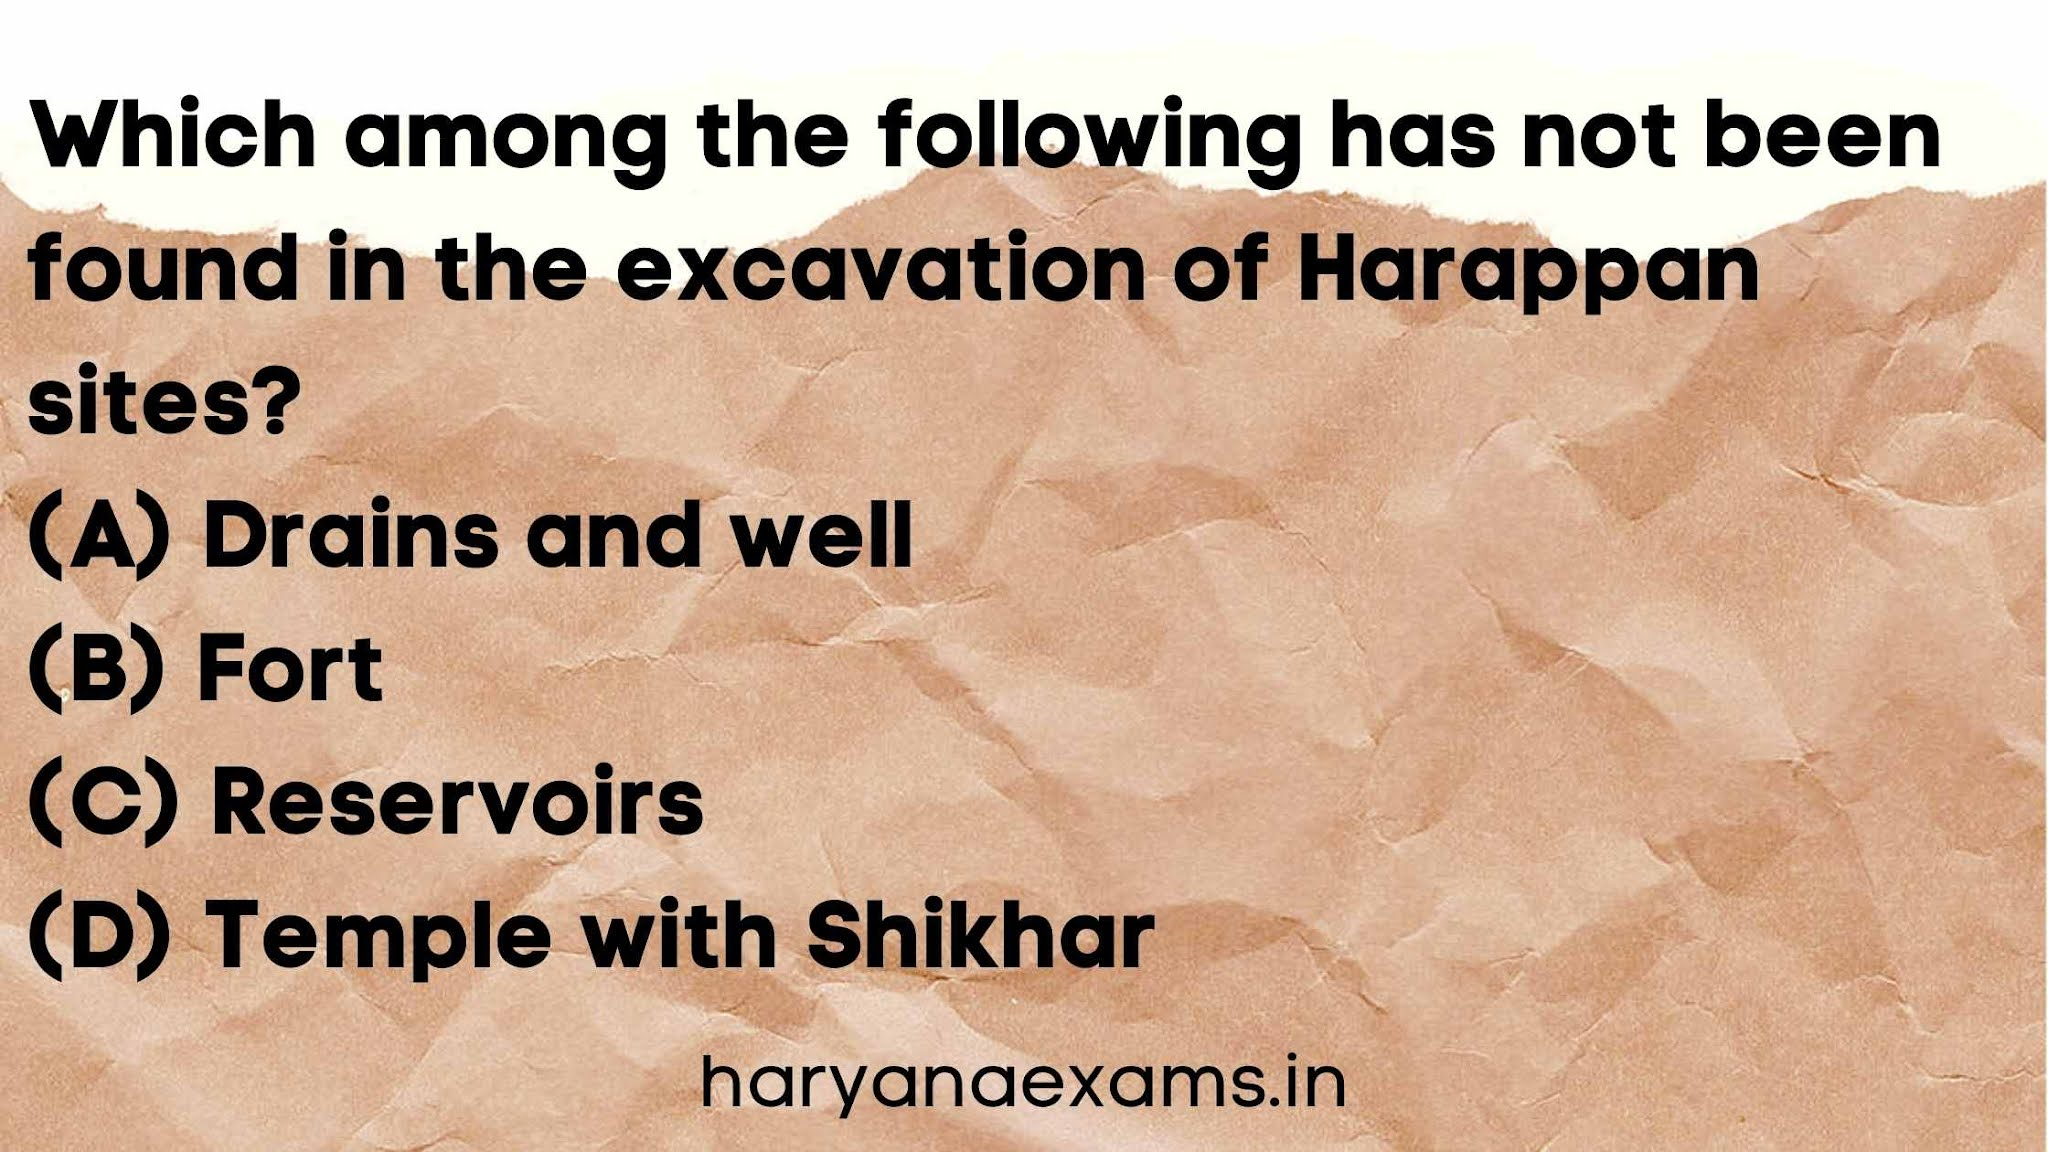 Which among the following has not been found in the excavation of Harappan sites?   (A) Drains and well   (B) Fort   (C) Reservoirs   (D) Temple with Shikhar